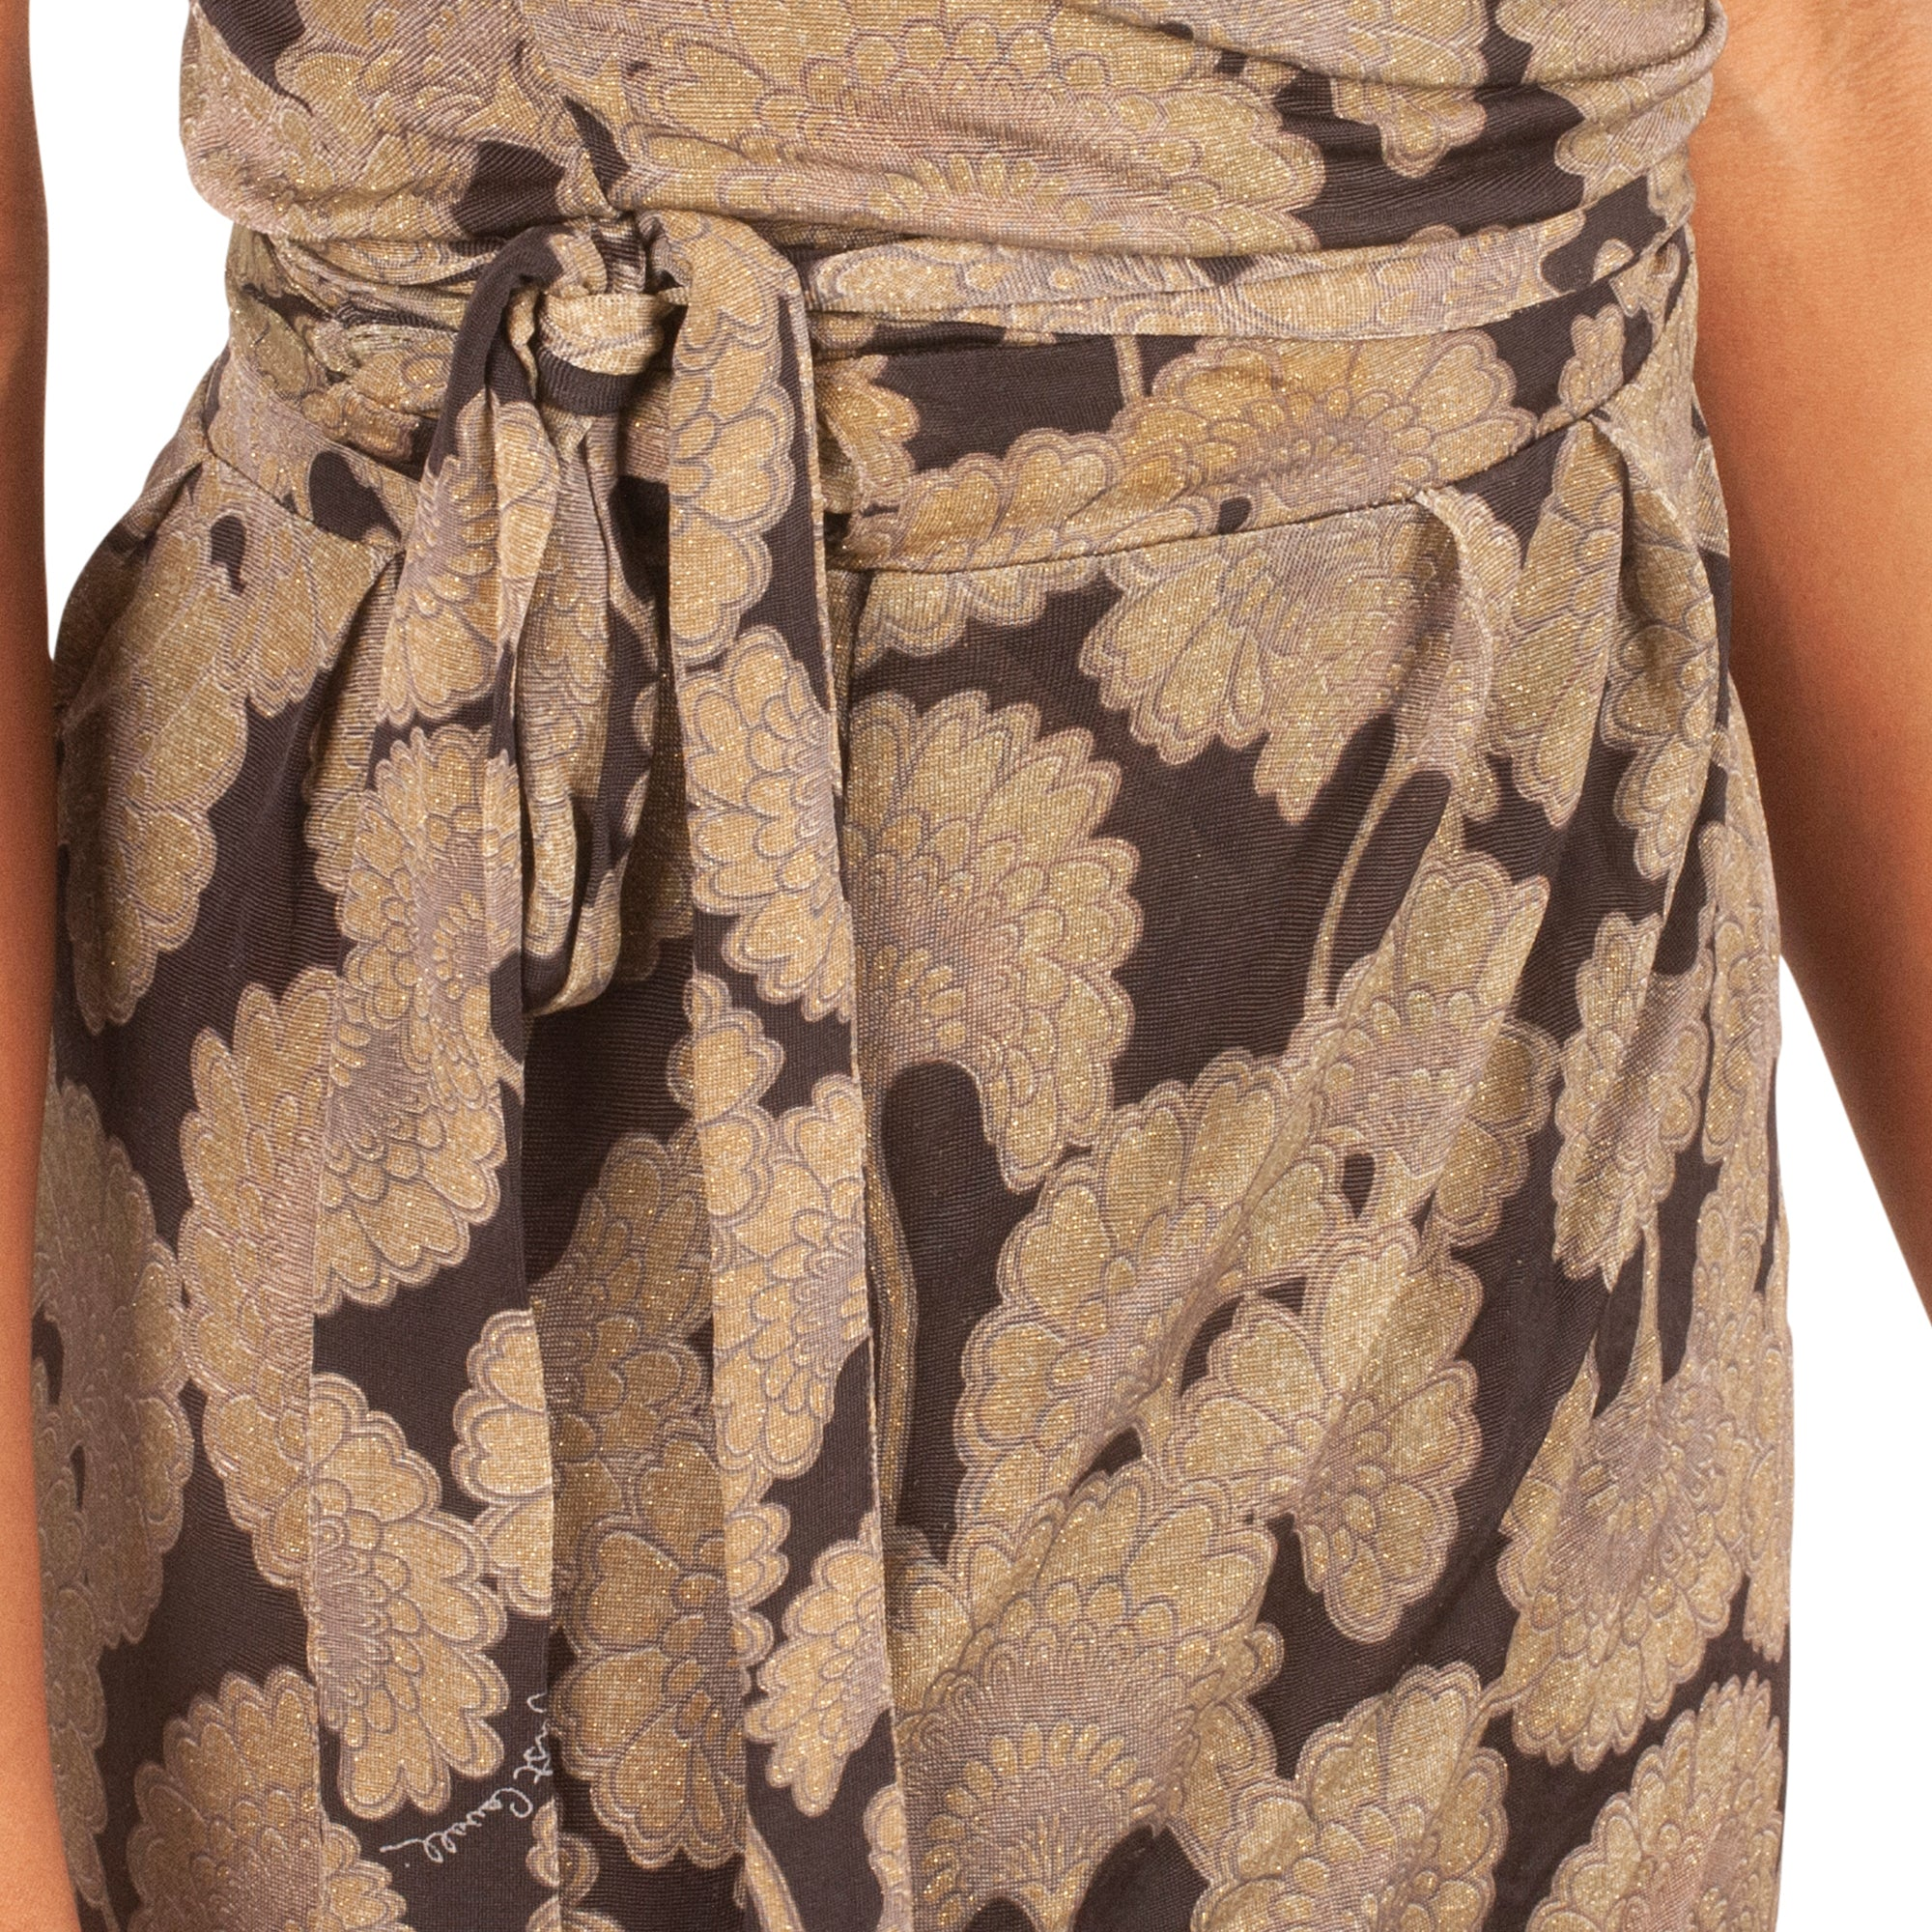 Roberto Cavalli Floral Dress (Black/Gold Shimmer) UK 8-10